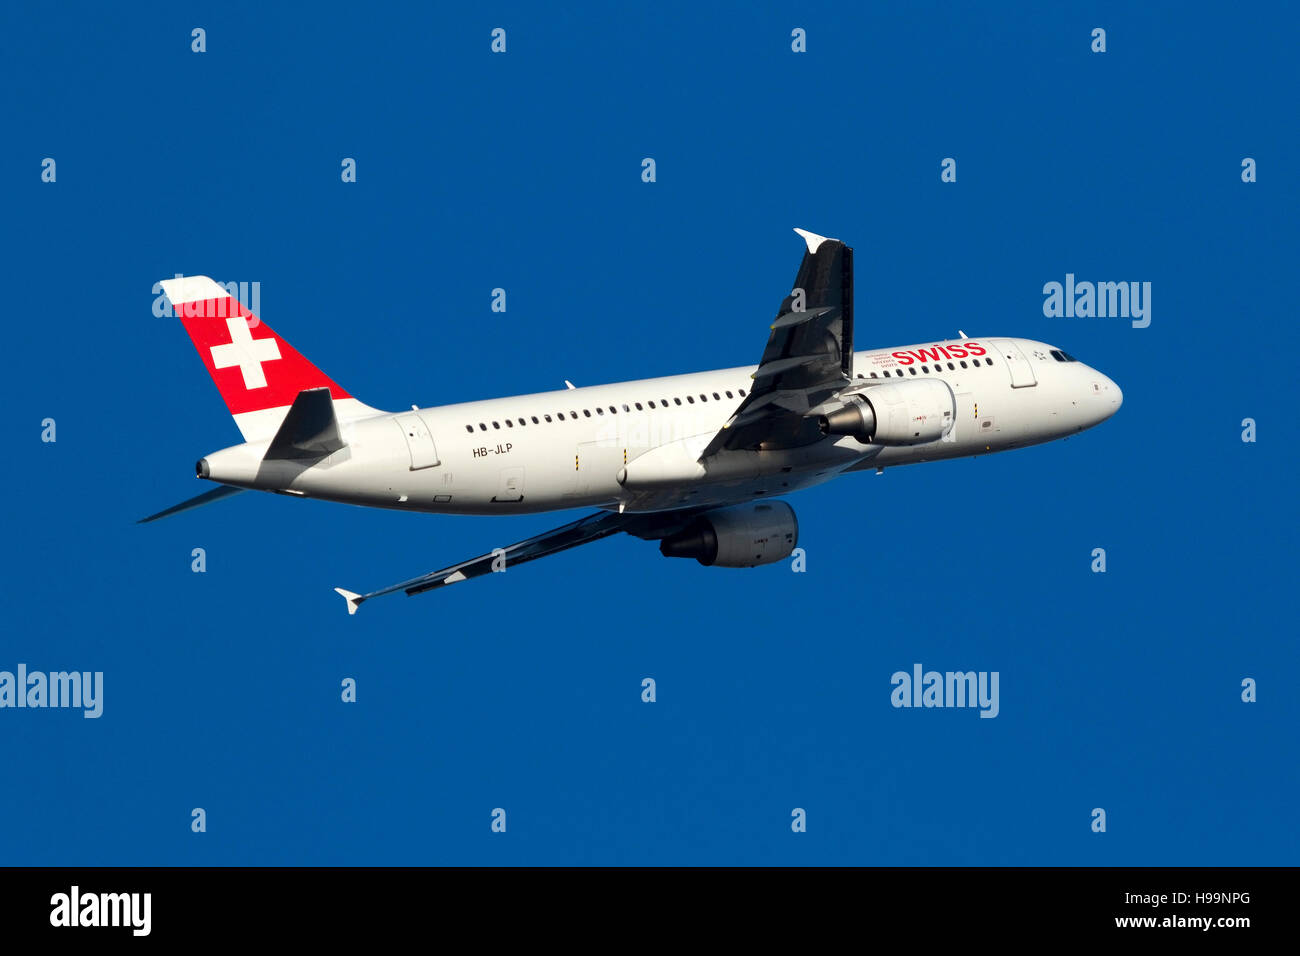 Swiss International Air Lines Airbus A320-214 [HB-JLP] on the climb out of runway 13. - Stock Image